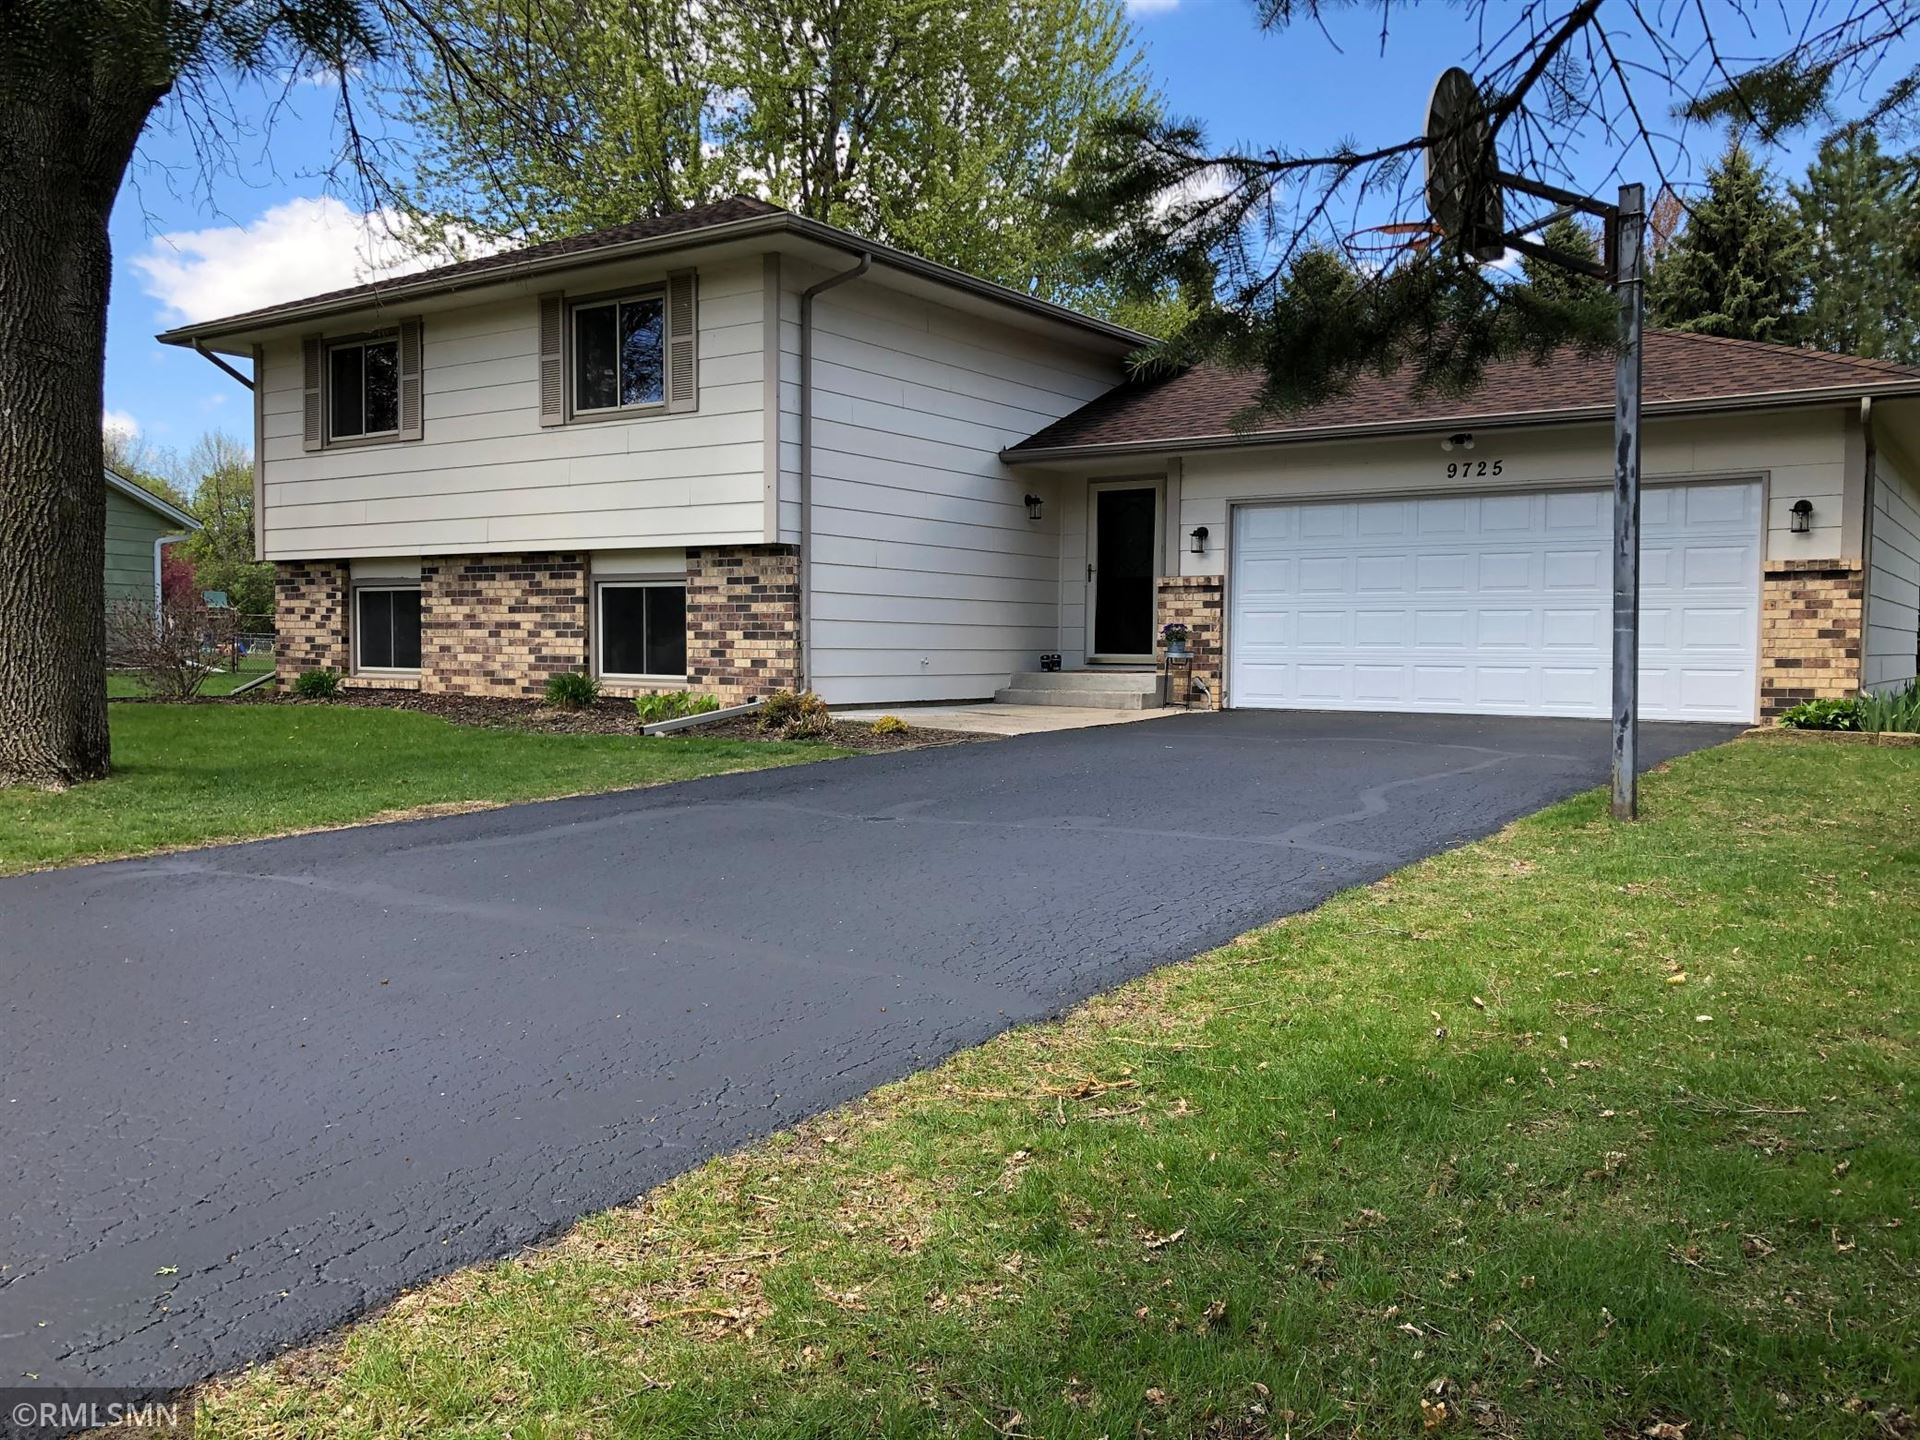 Photo of 9725 Upper 205th Street W, Lakeville, MN 55044 (MLS # 5753734)